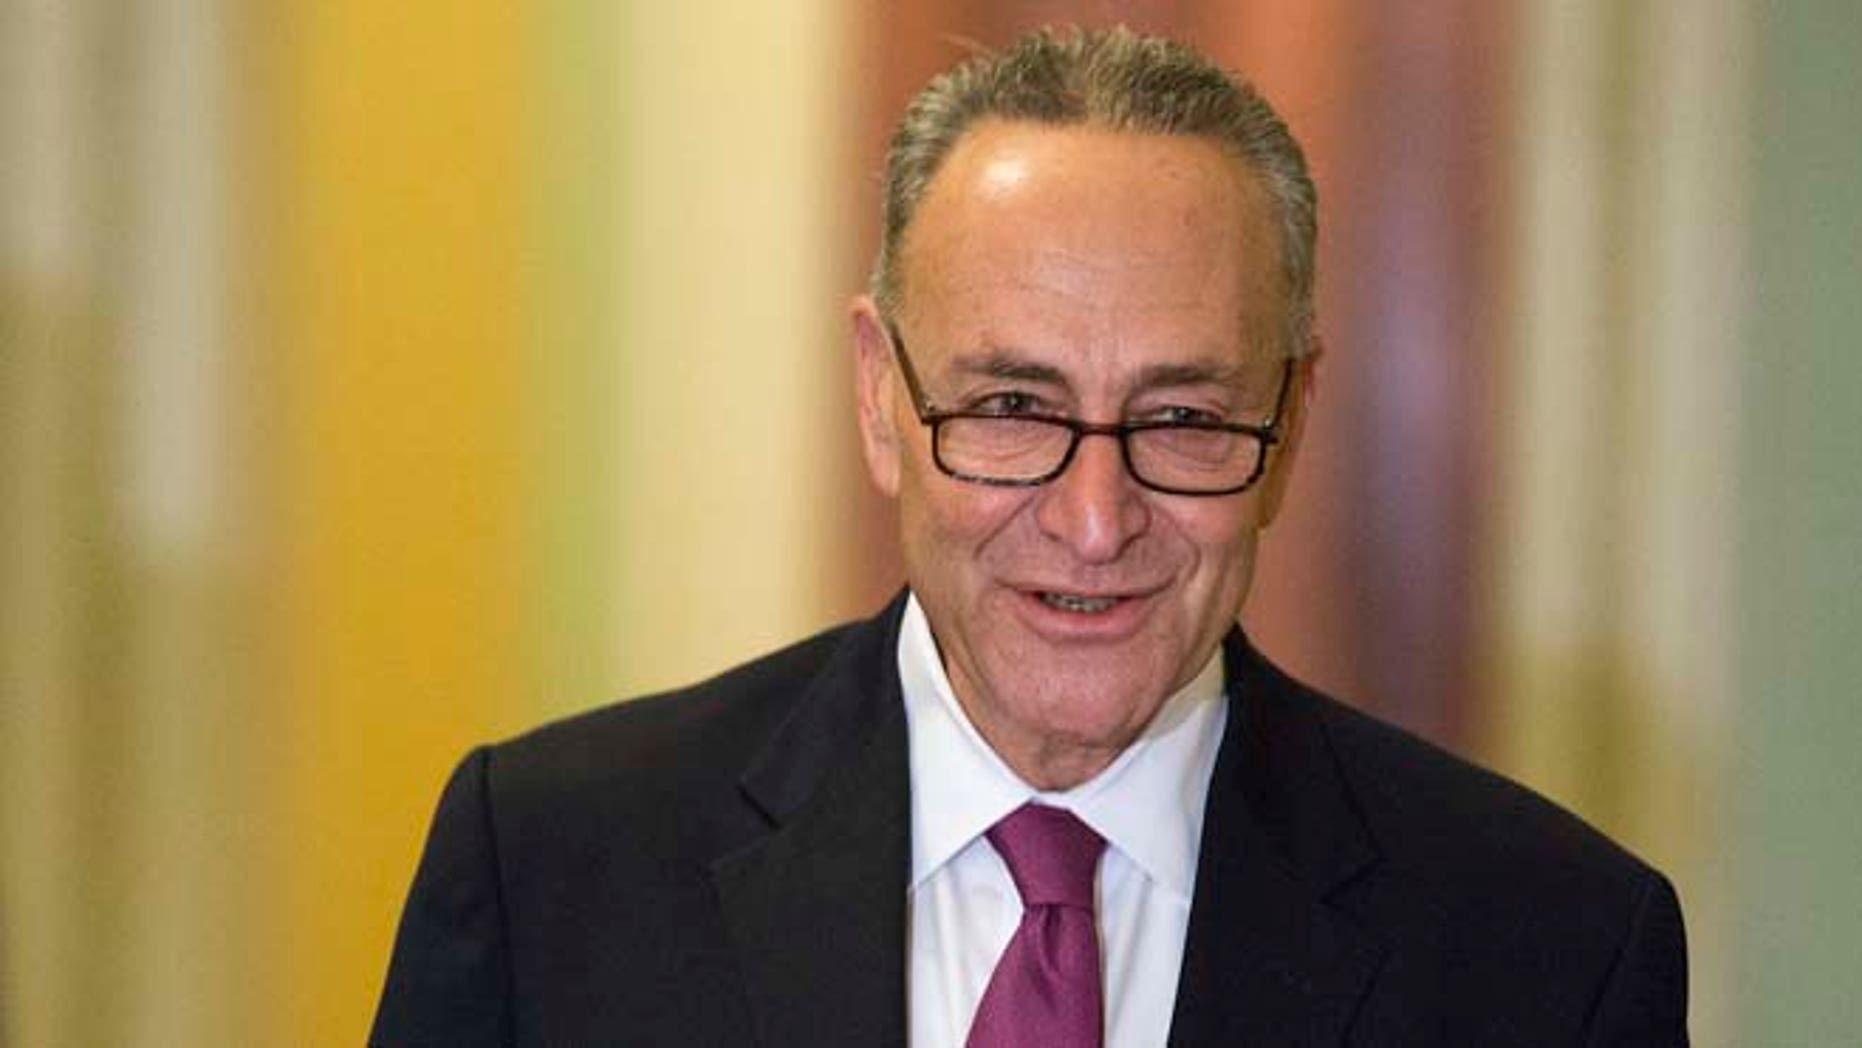 This Nov. 13, 2014 file photo shows Senator Chuck Schumer, D-N.Y., on Capitol Hill in Washington.